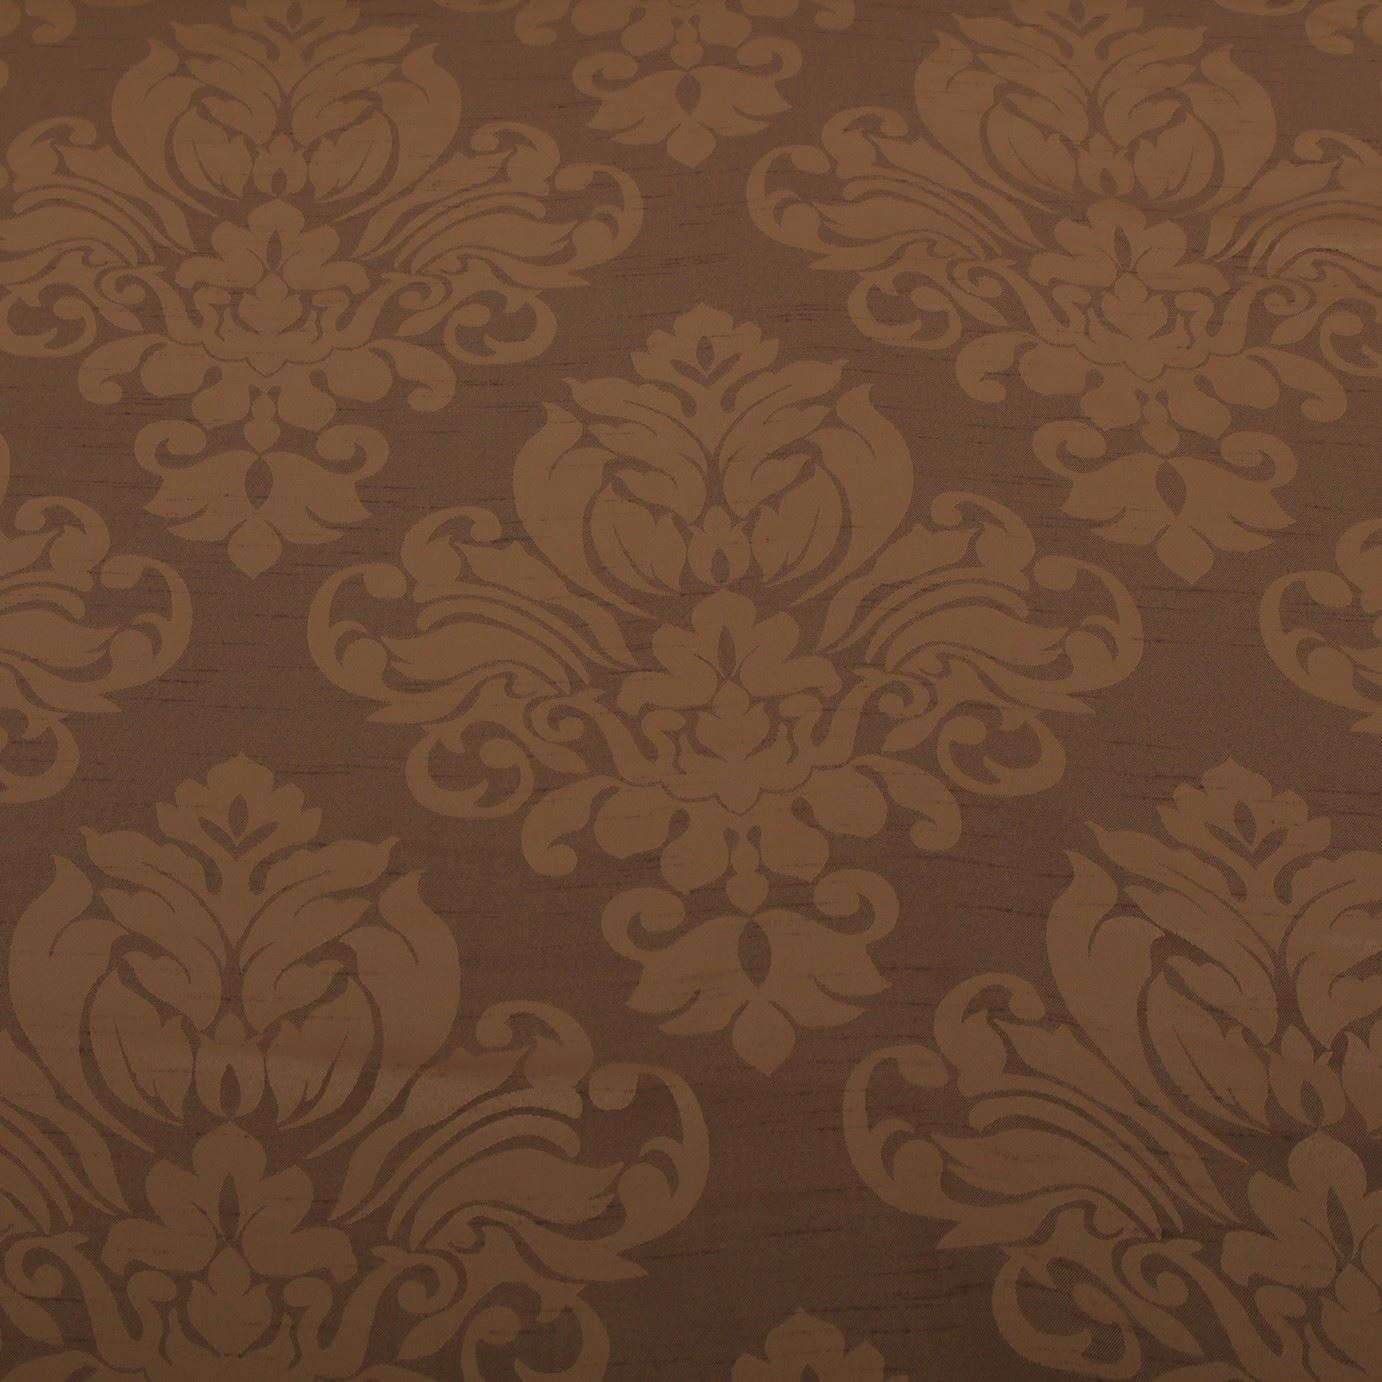 thumbnail 22 - FLORAL DAMASK FAUX SILK JACQUARD CURTAIN UPHOLSTERY FABRIC MATERIAL 12 COLOURS